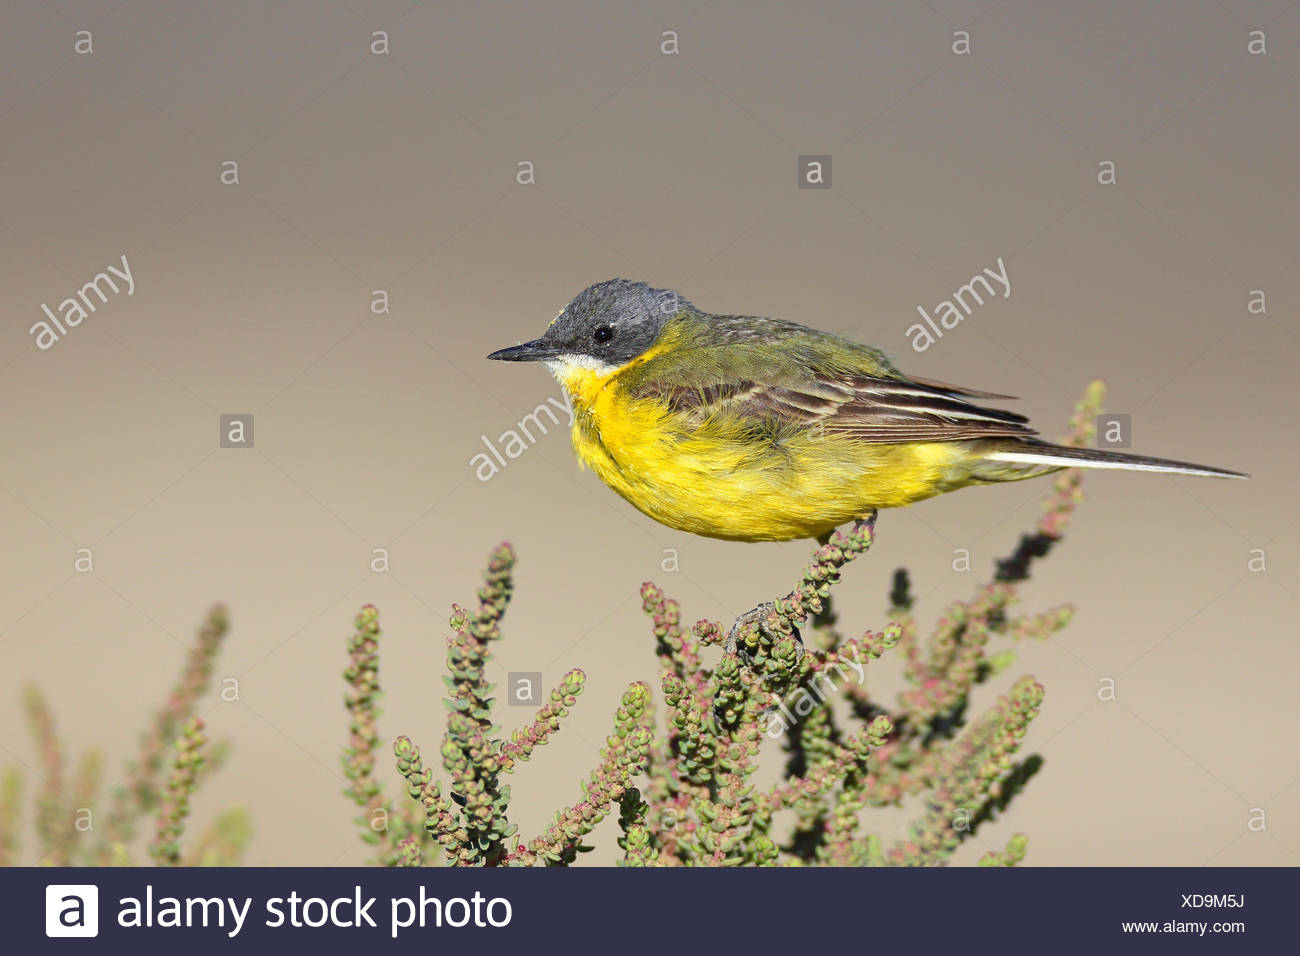 Ashy-headed Wagtail, Yellow wagtail (Motacilla flava cinereocapilla), male sitting on a succulent shrub, France, Camargue - Stock Image